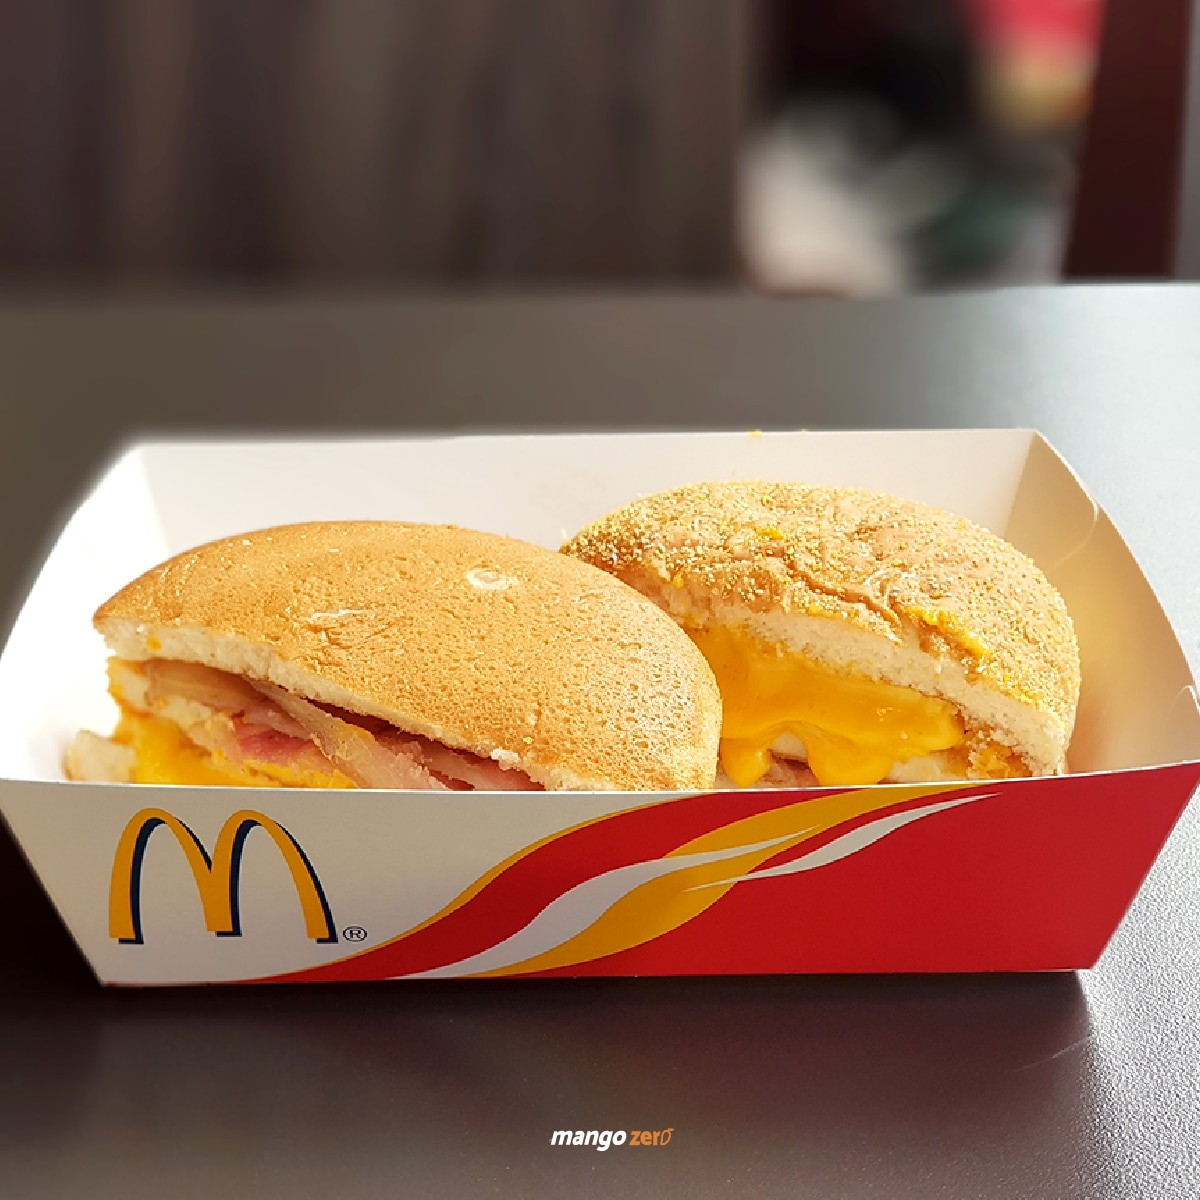 mcdonalds-cheesy-egg-bun-and-sweet-potato-desserts-06